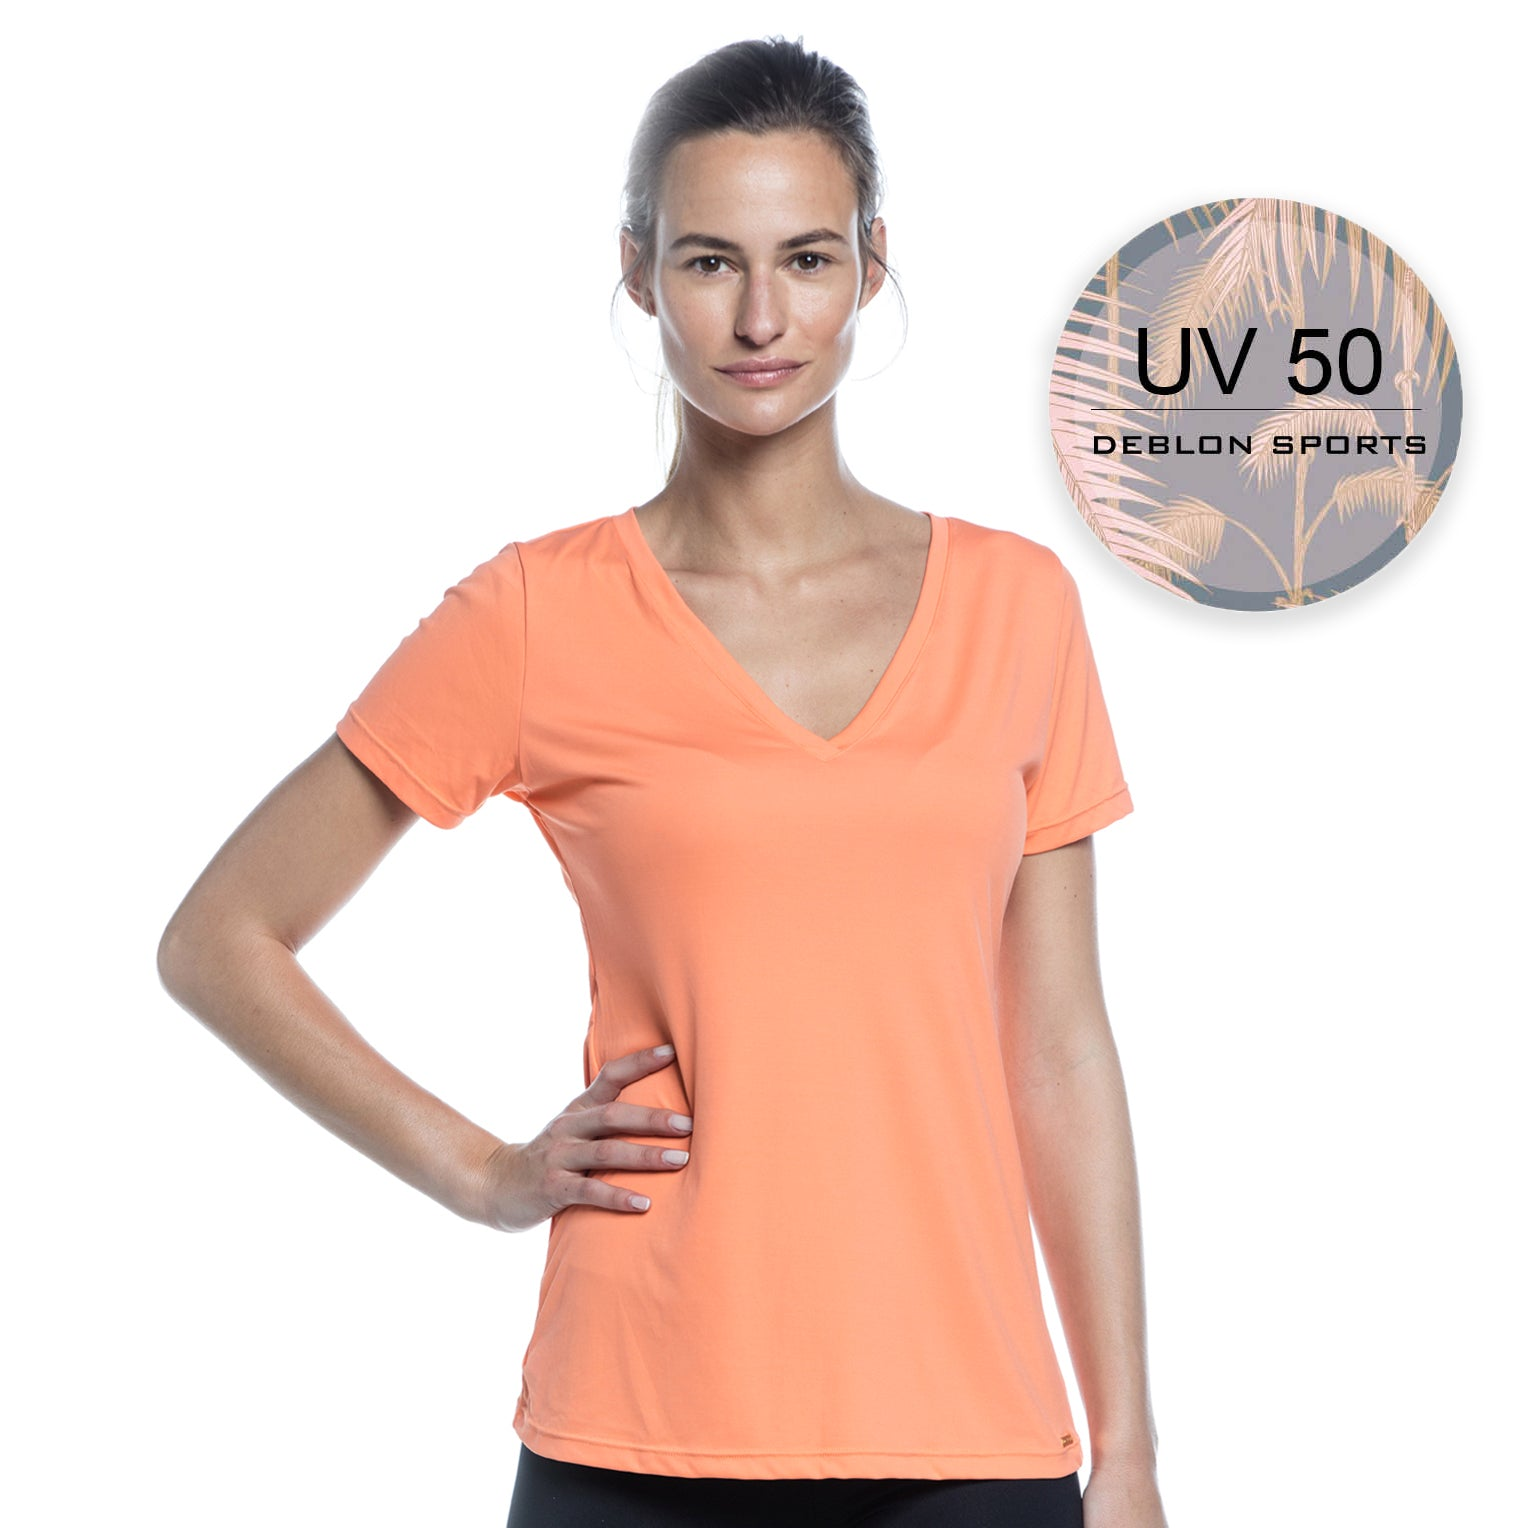 ZACH T-SHIRT | UV 50 (PEACH)